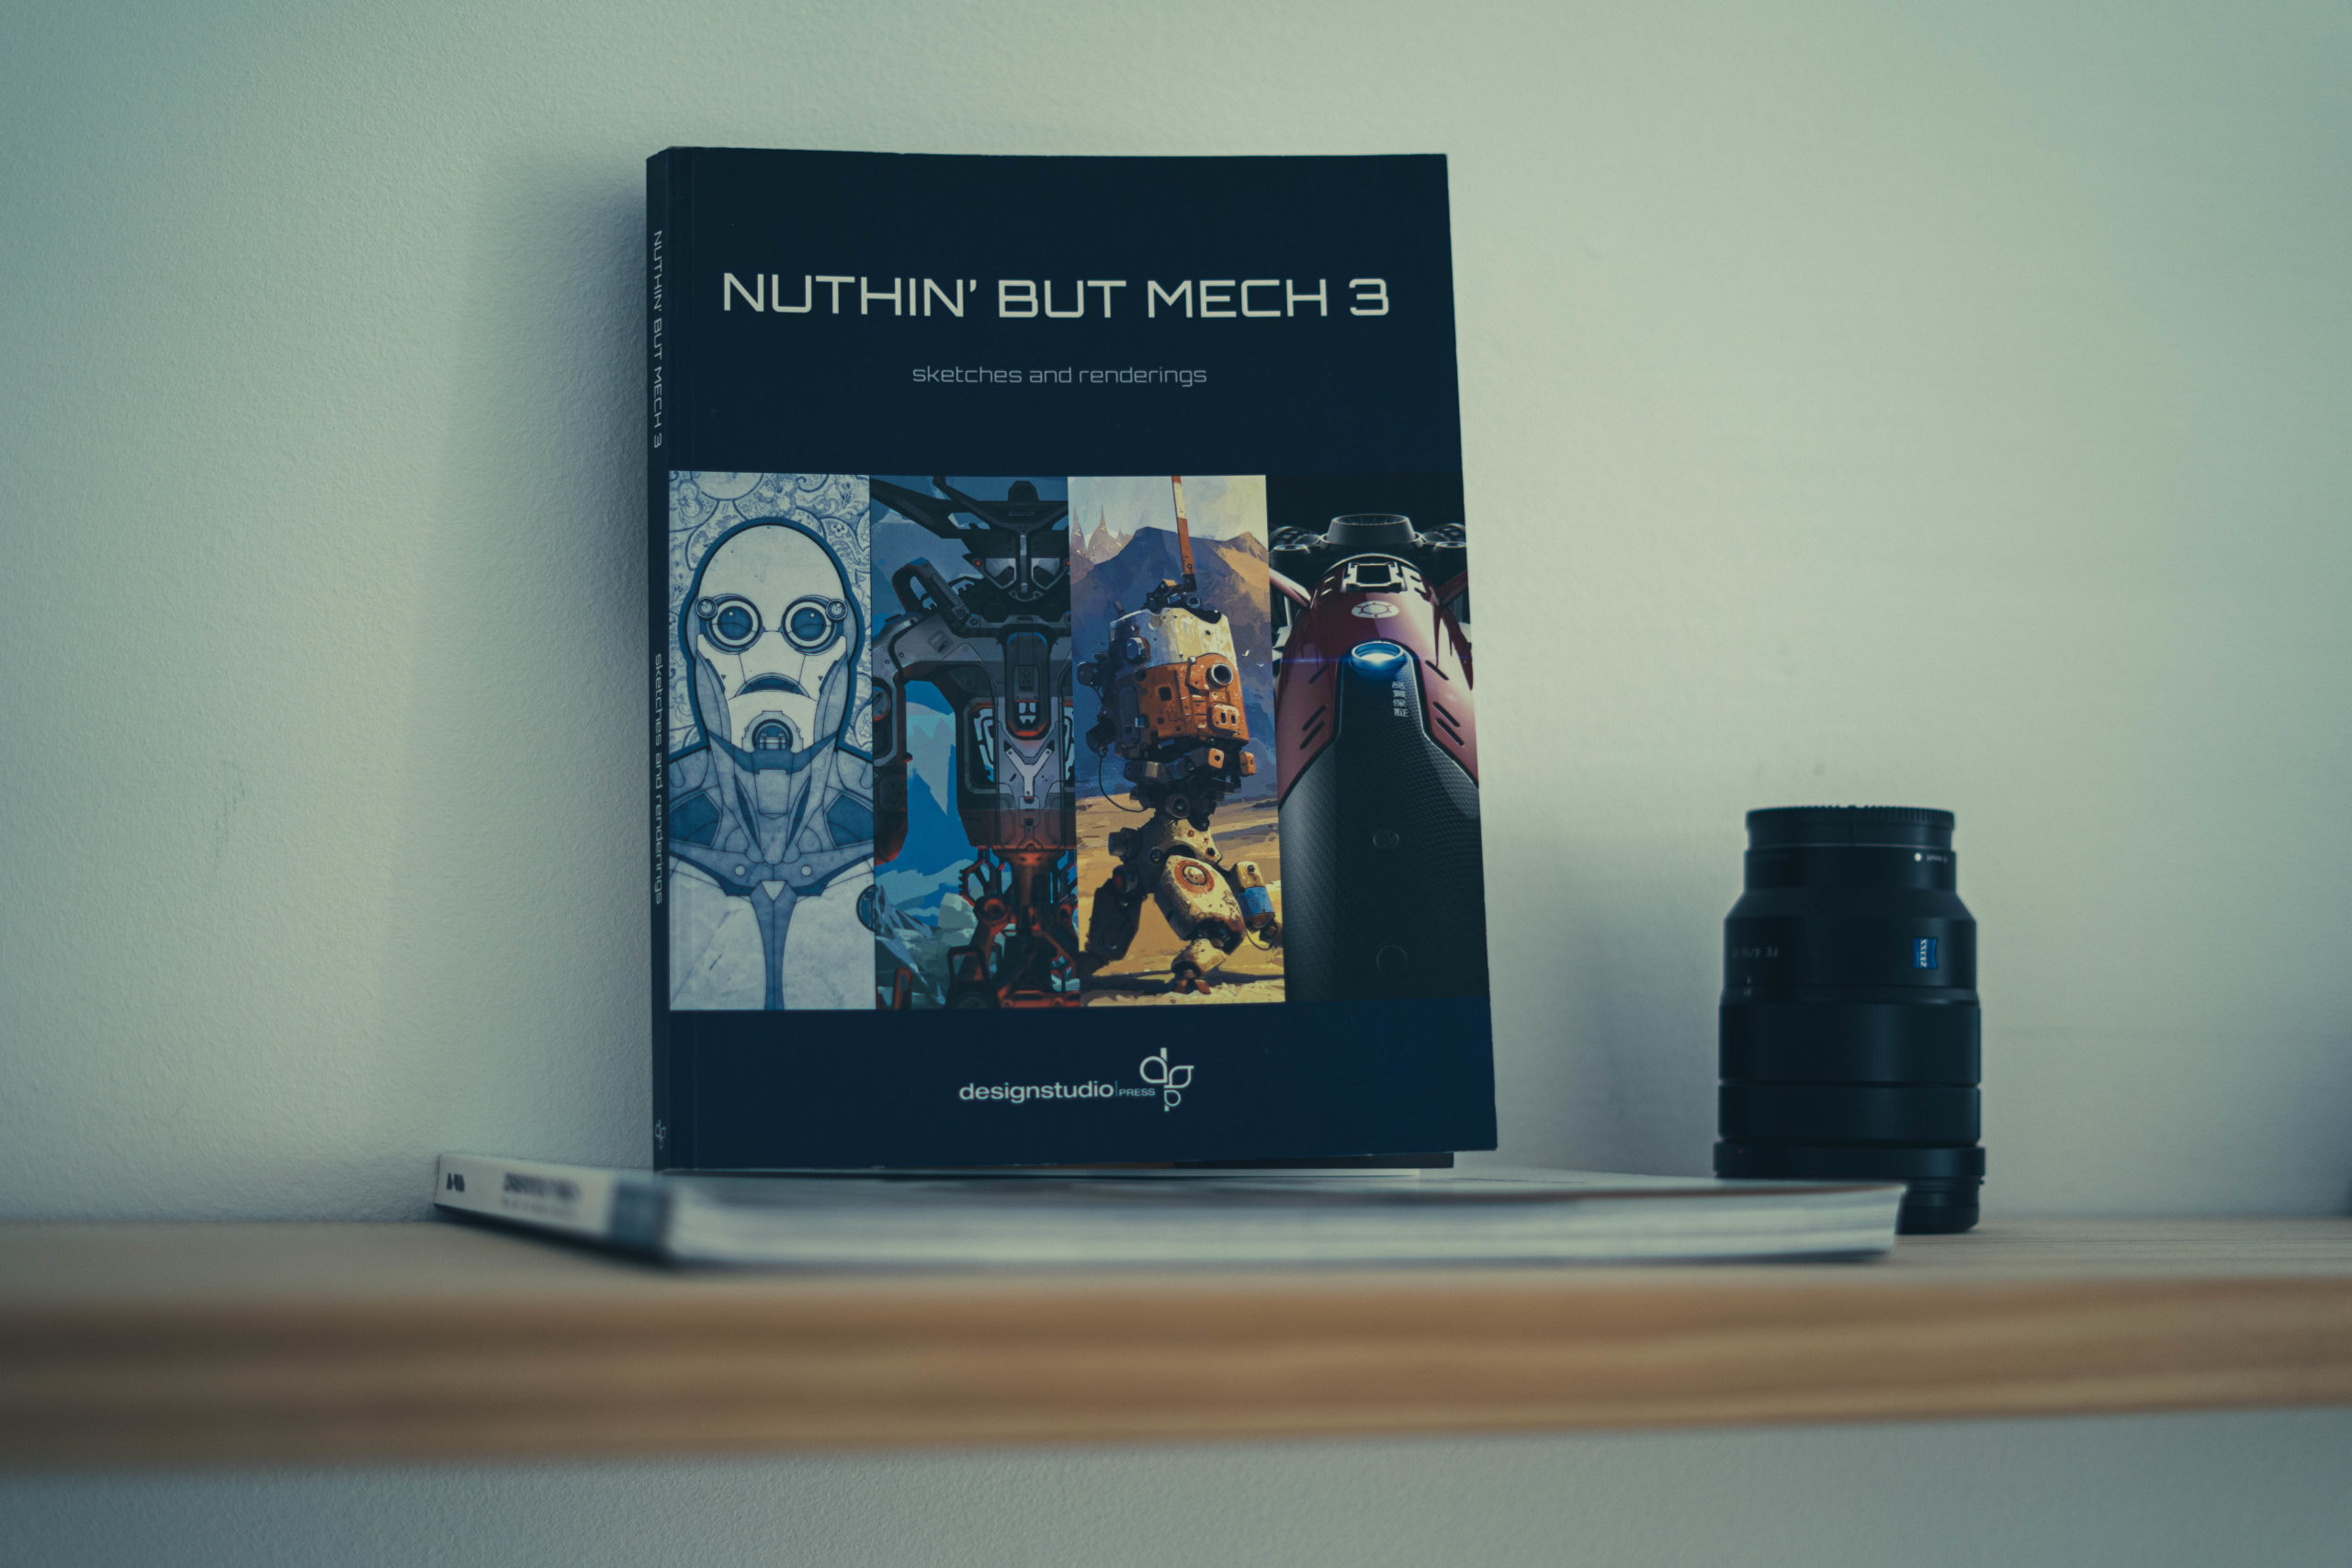 Nuthin But Mech 3